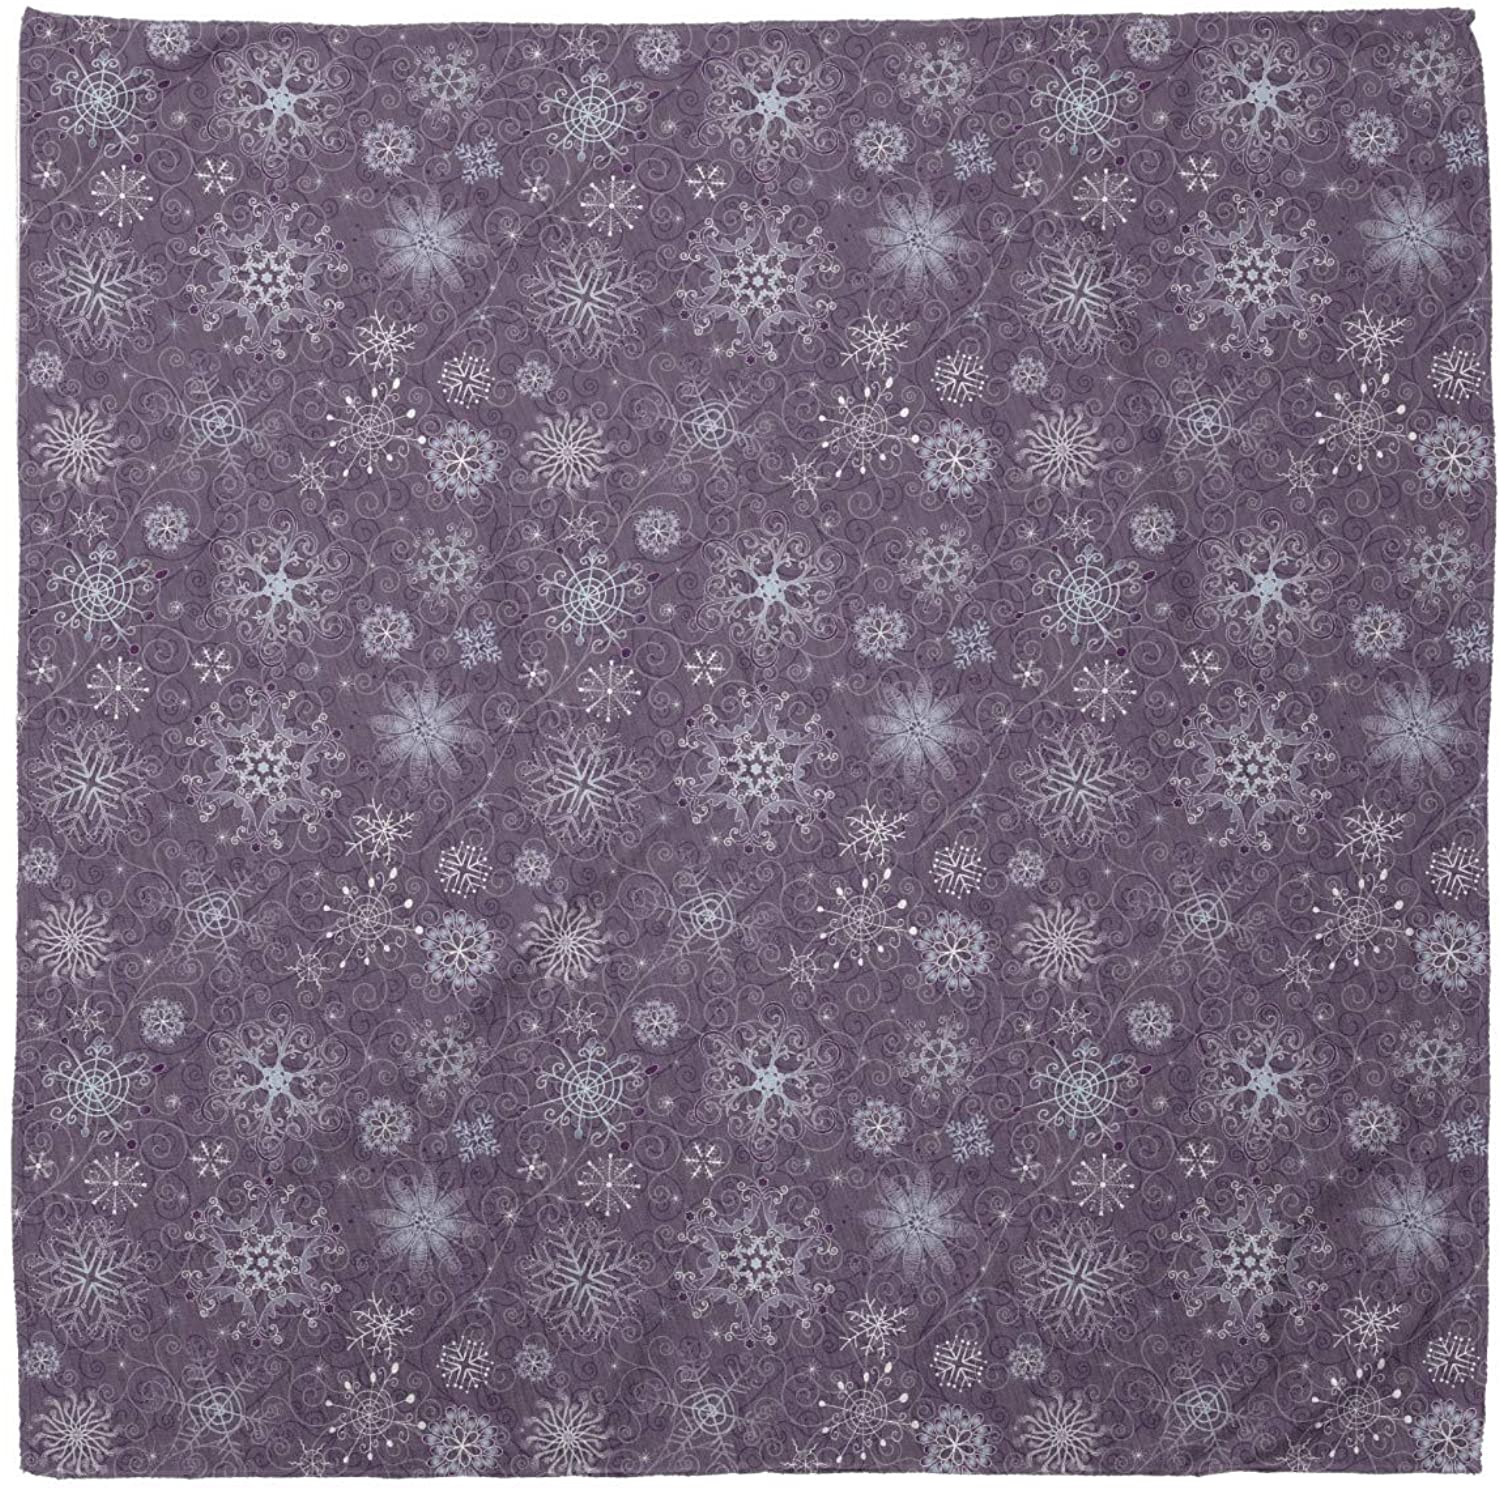 Ambesonne Snowflake Bandana, Christmas Flowers, Unisex Head and Neck Tie